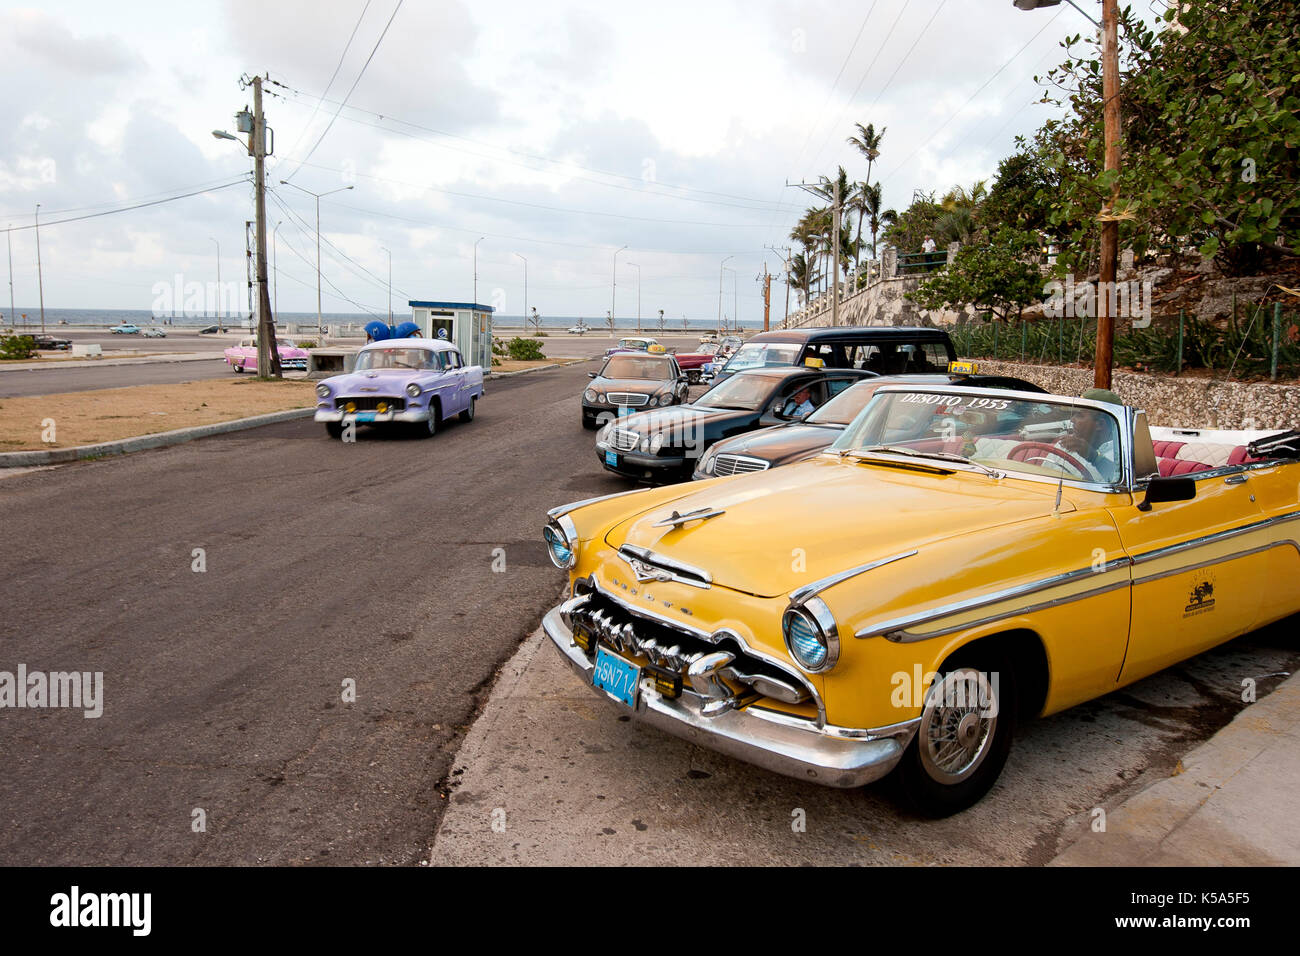 1950 American Cars Stock Photos & 1950 American Cars Stock Images ...